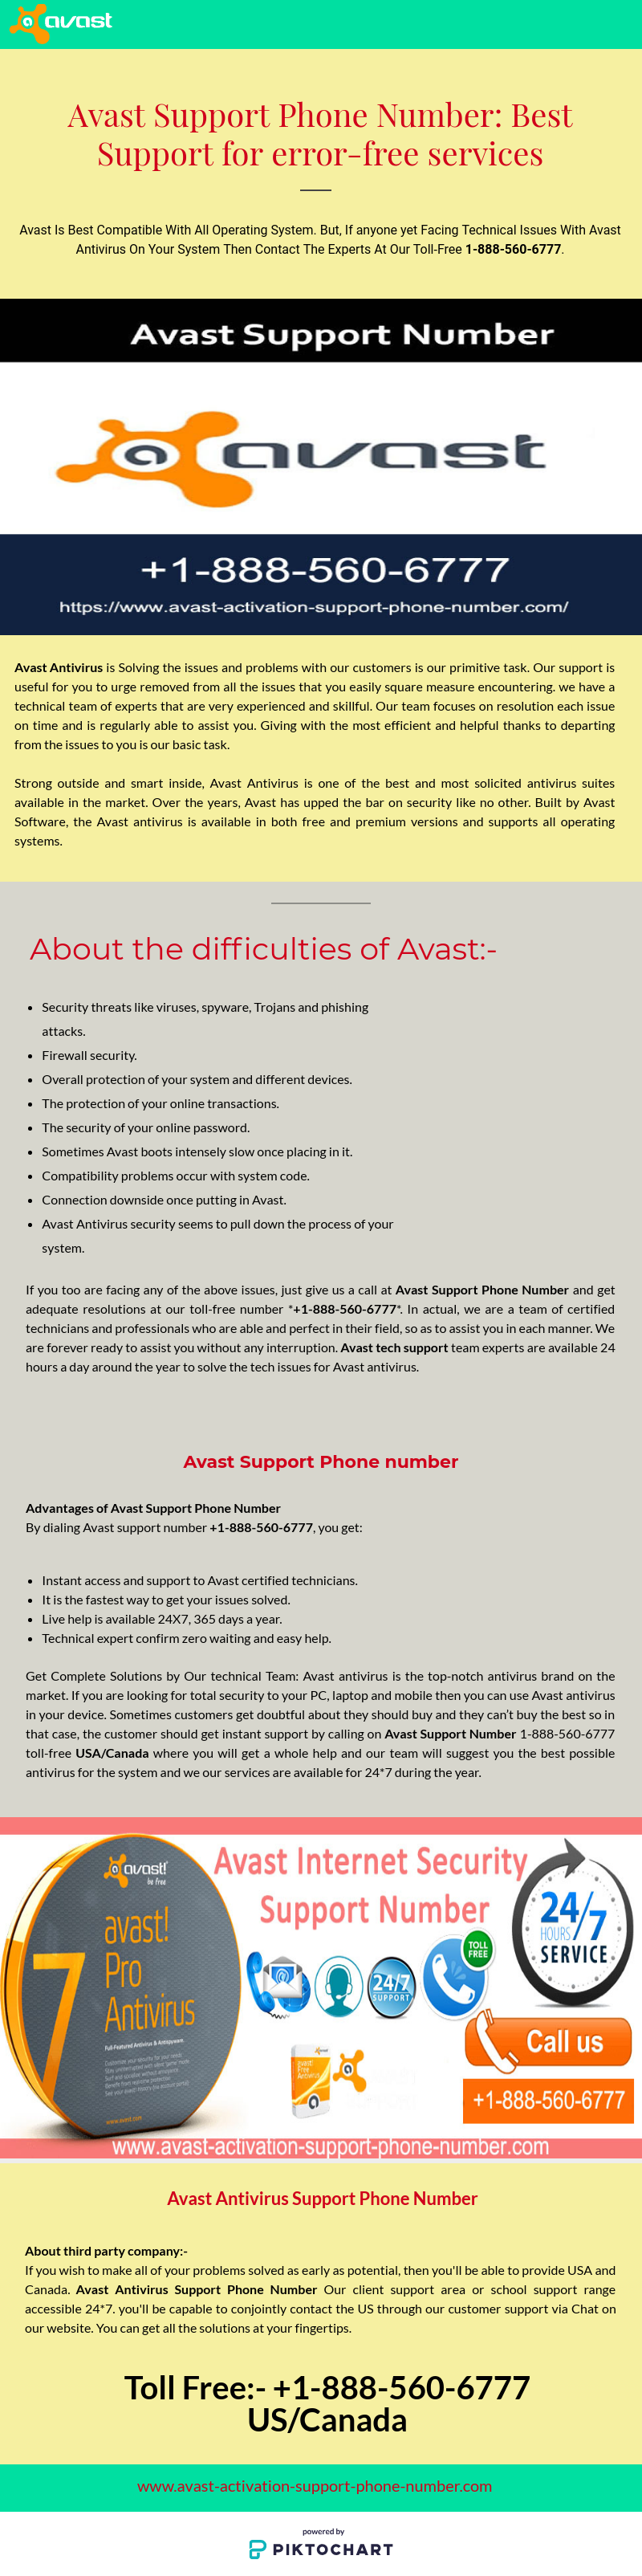 One small call to Avast Antivirus Support Phone Number US